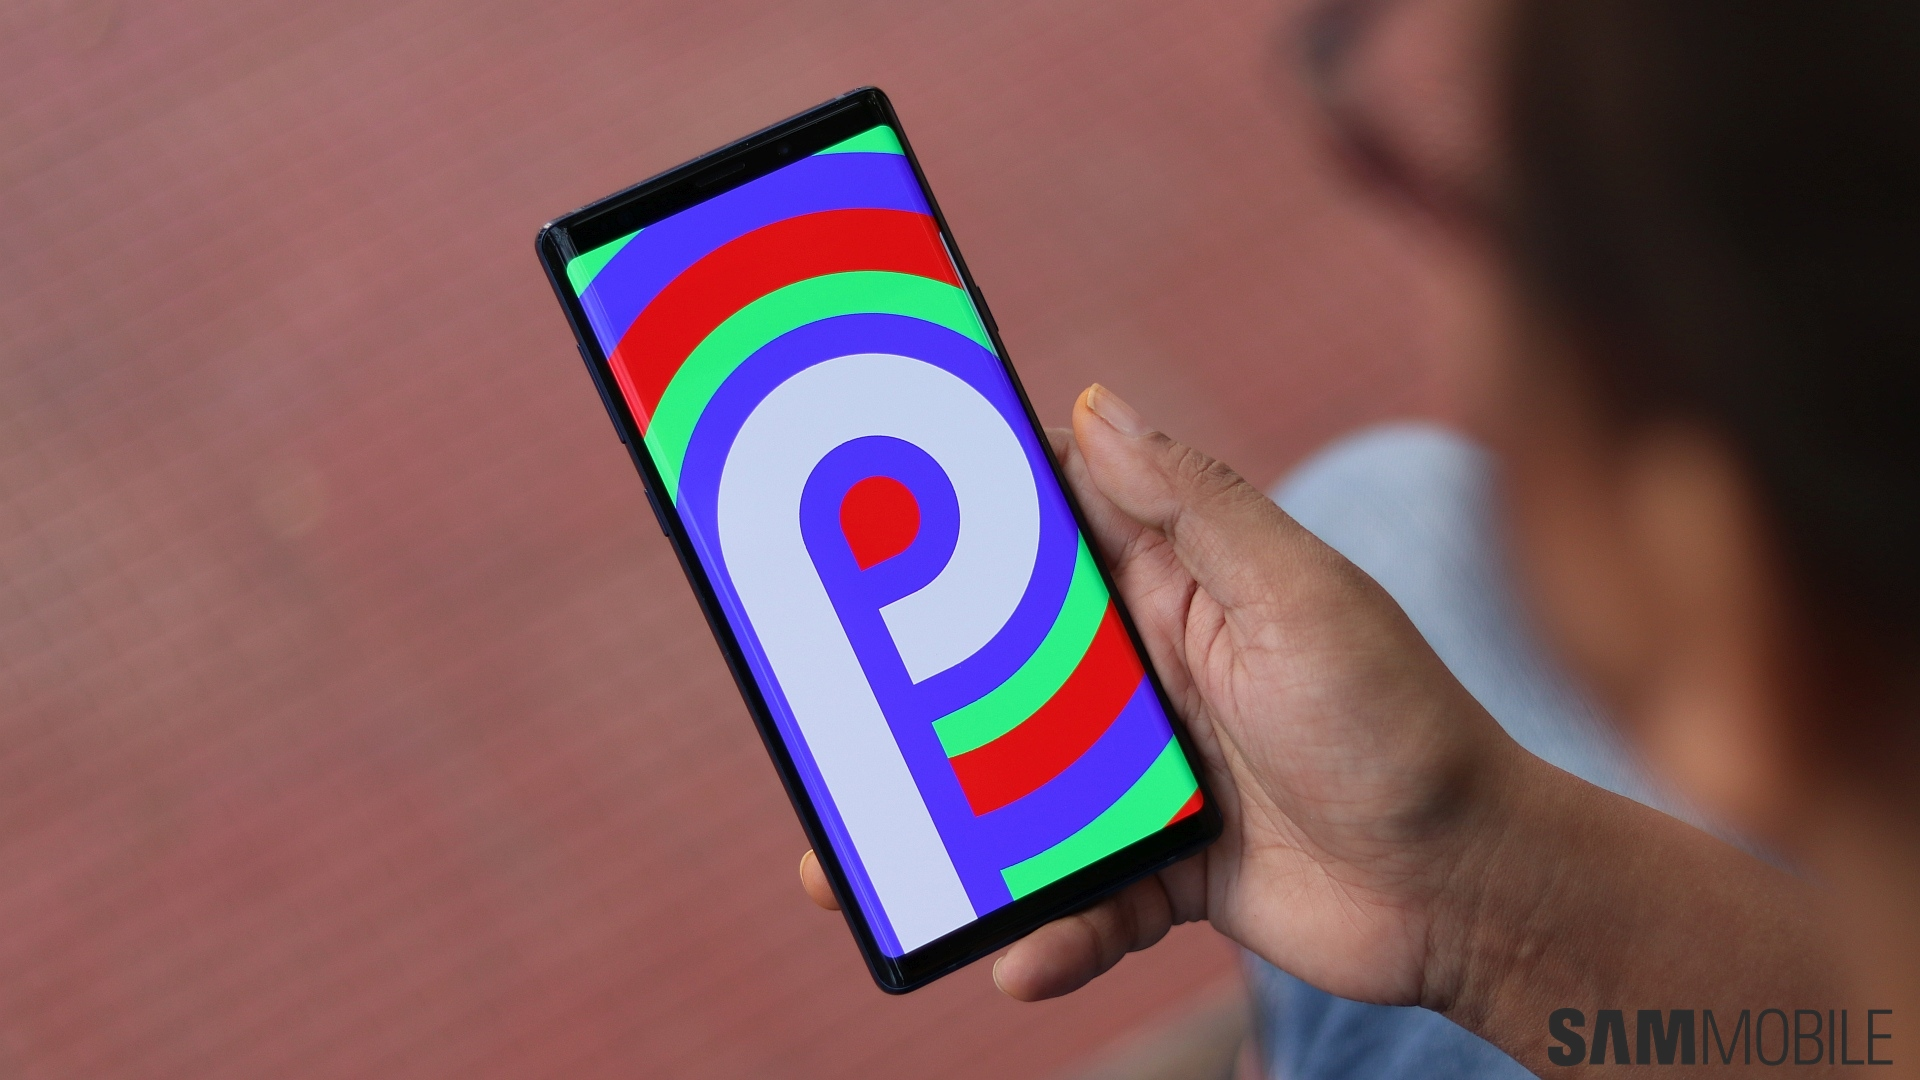 Galaxy Note 9 Android Pie update for non-beta users rolling out in